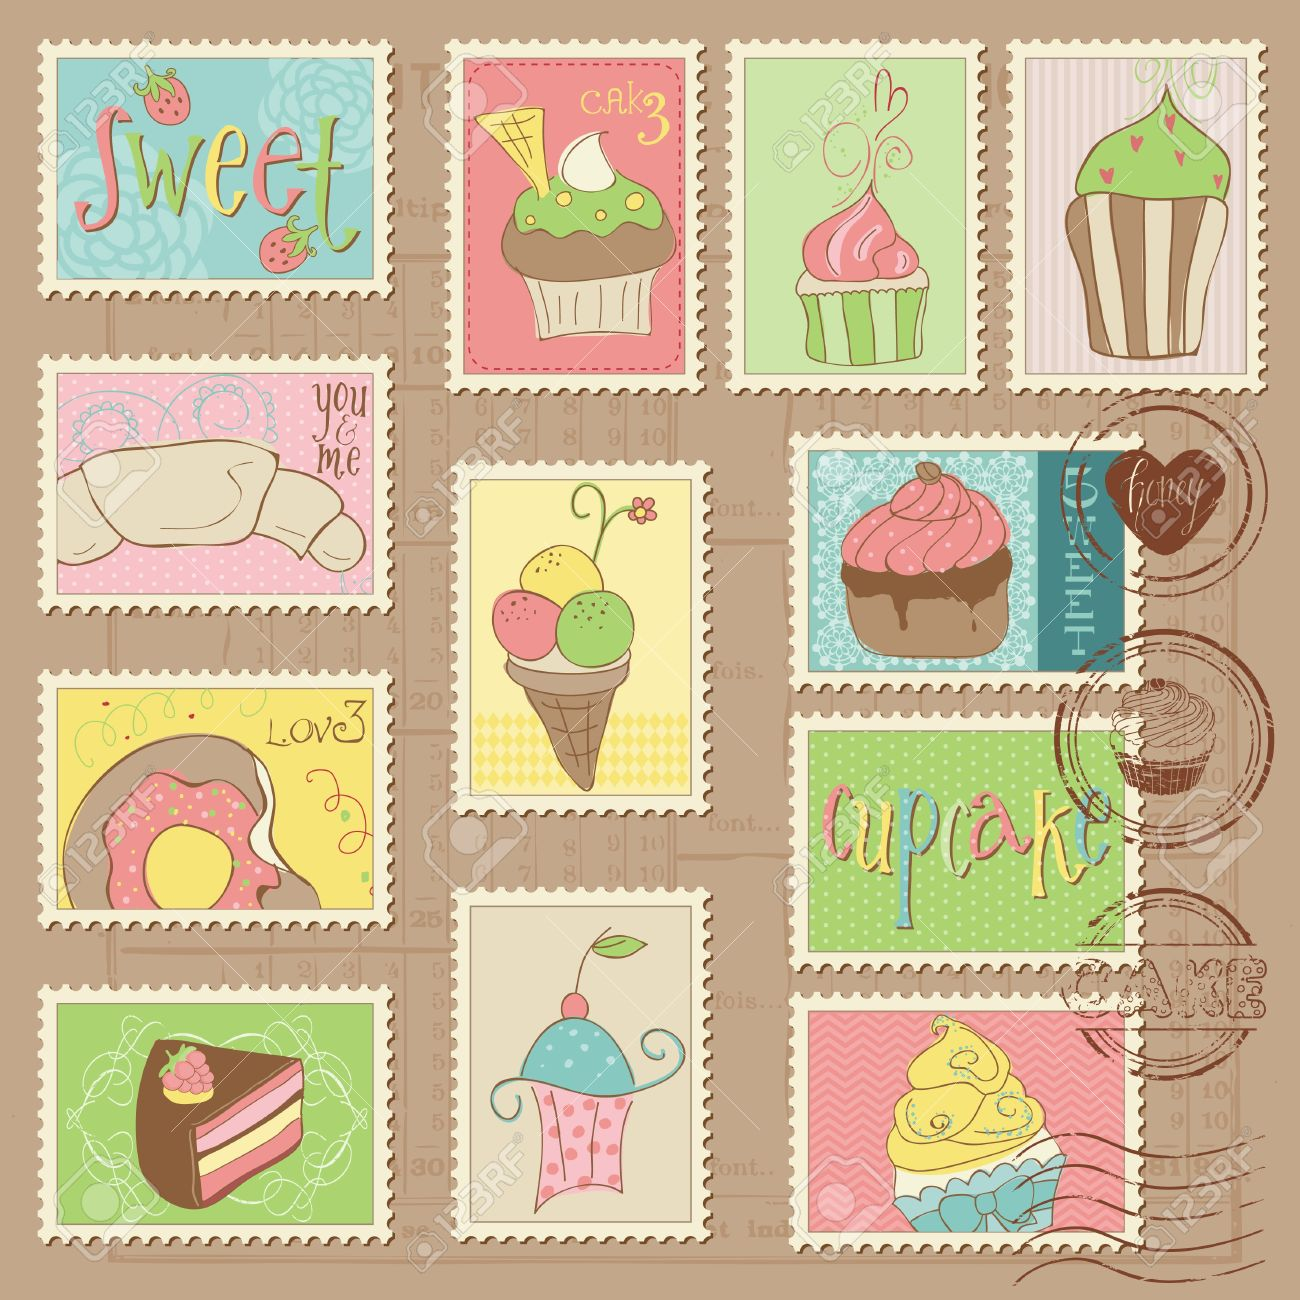 Sweet Cakes and Desserts Postage Stamps Stock Vector - 10662883